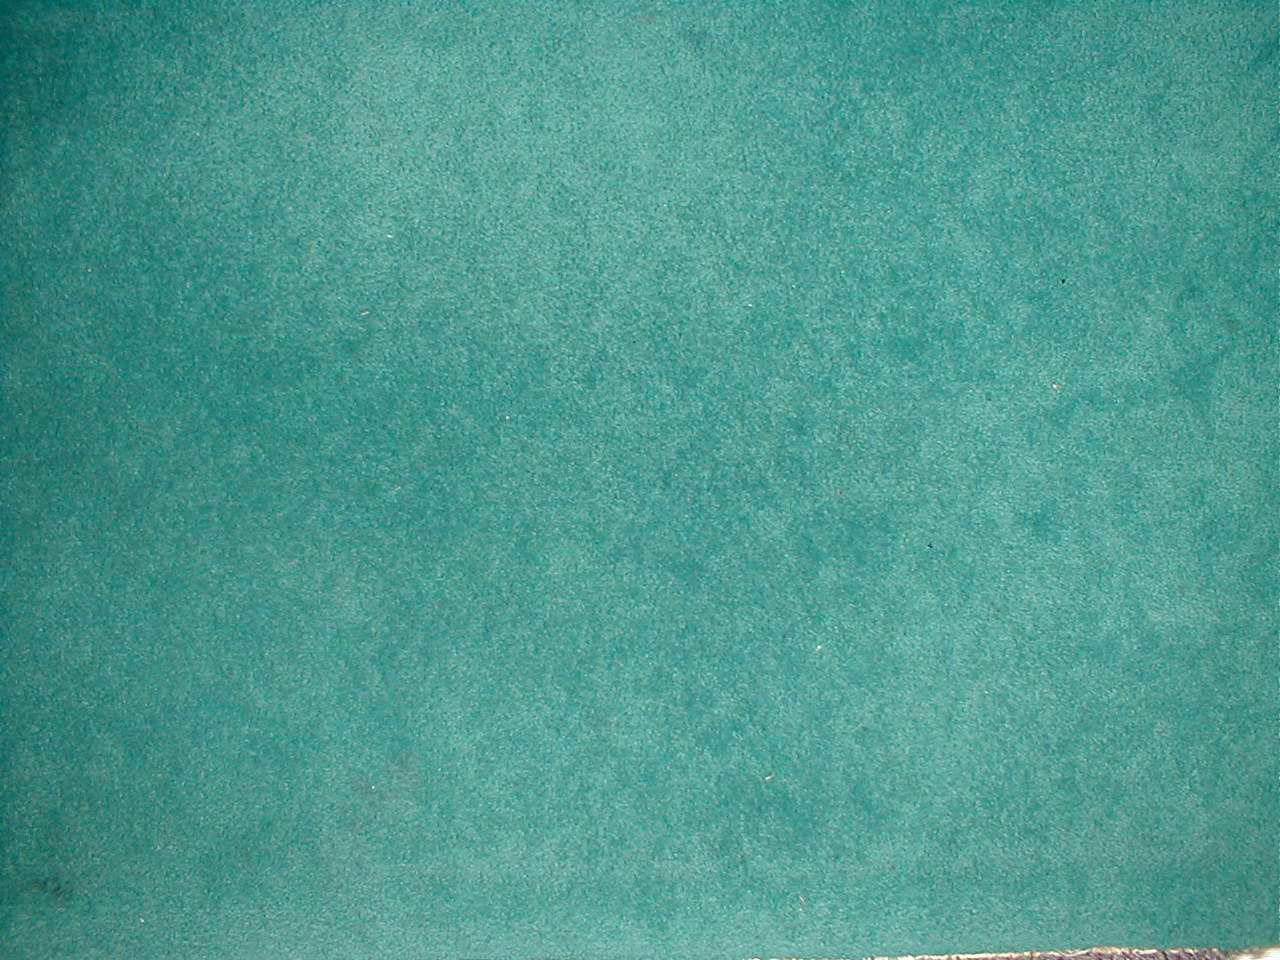 The Texture Of Teal And Turquoise: Teal Carpet Texture By Dougnaka On DeviantArt